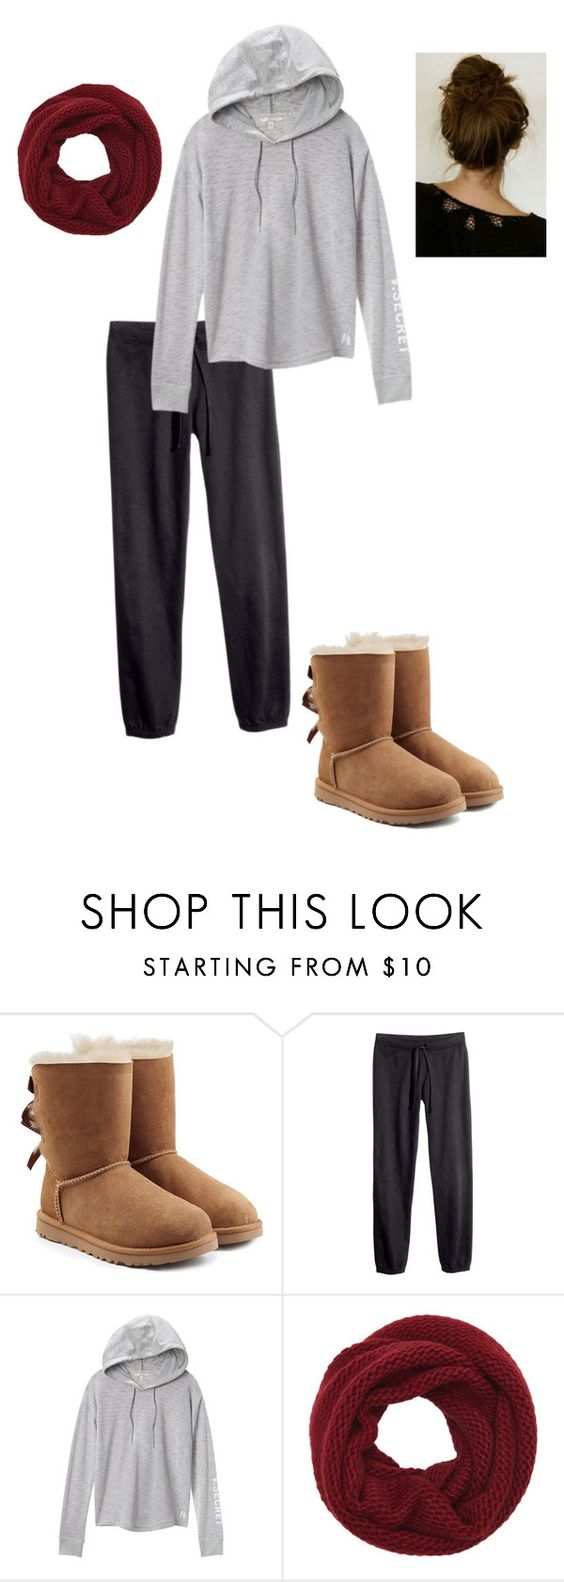 """Untitled #284"" by stockshowgrl on Polyvore featuring UGG, H&M, Victoria's Secret and Wyatt"